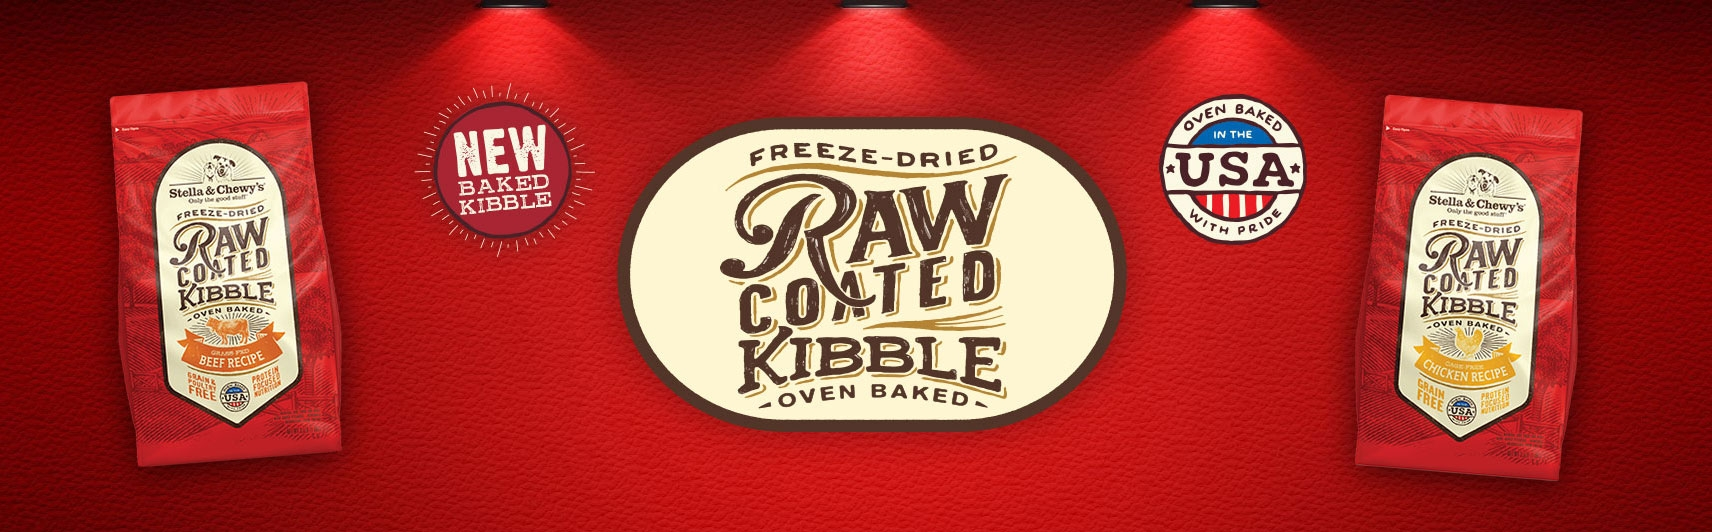 Dog Raw Coated Kibble